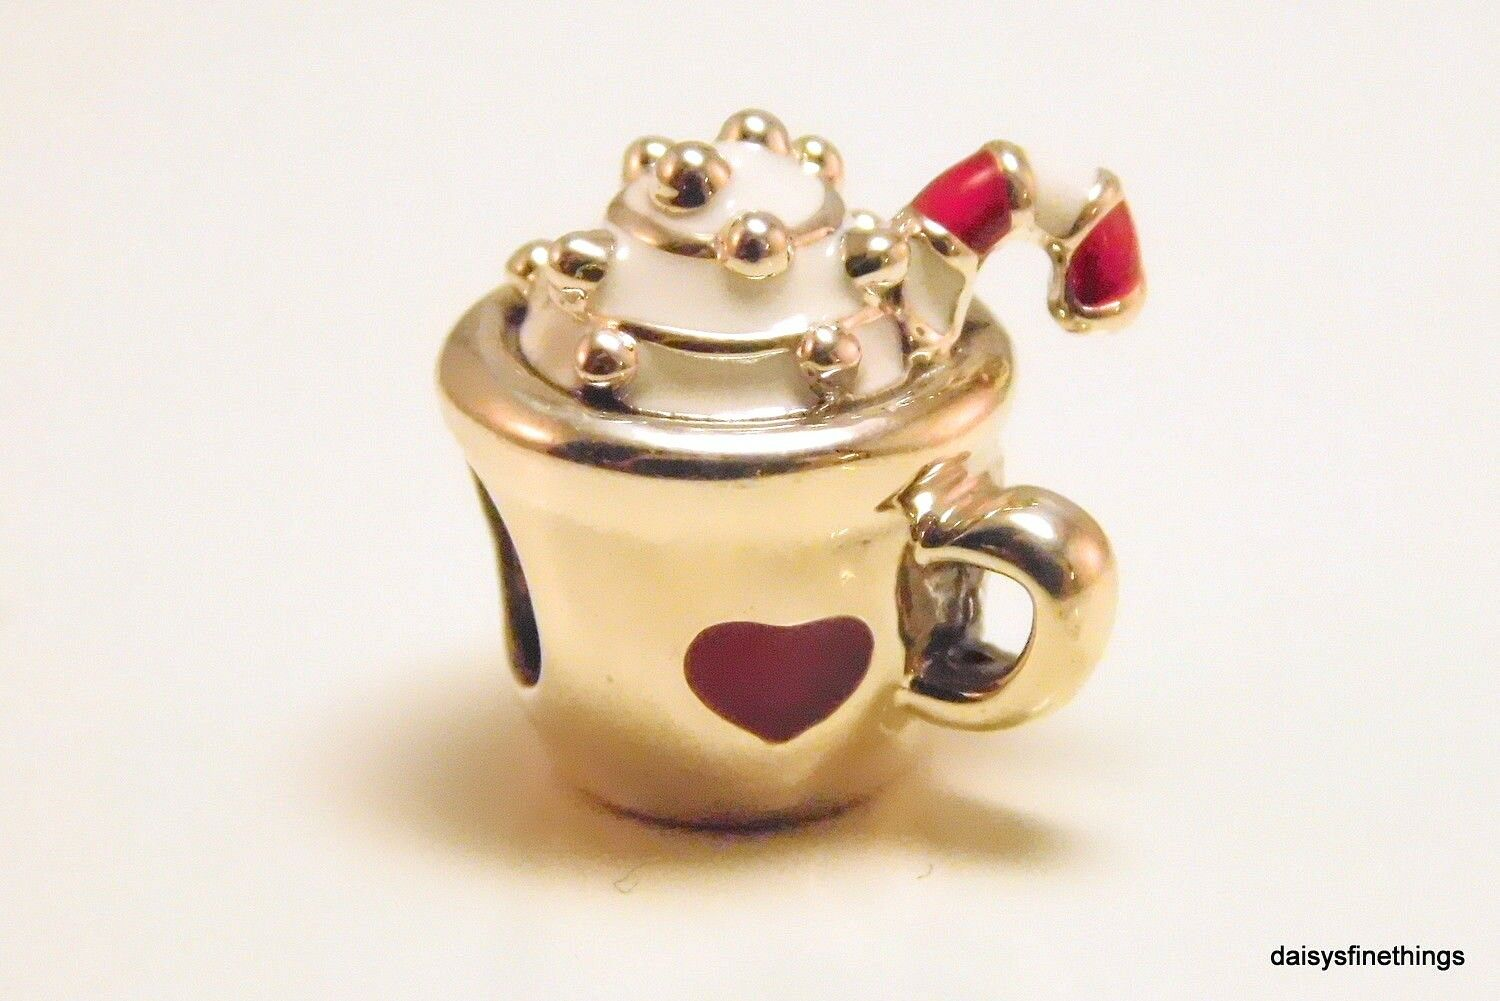 d2256fdf2 Christmas 2018 PANDORA Cup Warm Cocoa Charm Bead Holiday Sterling ...